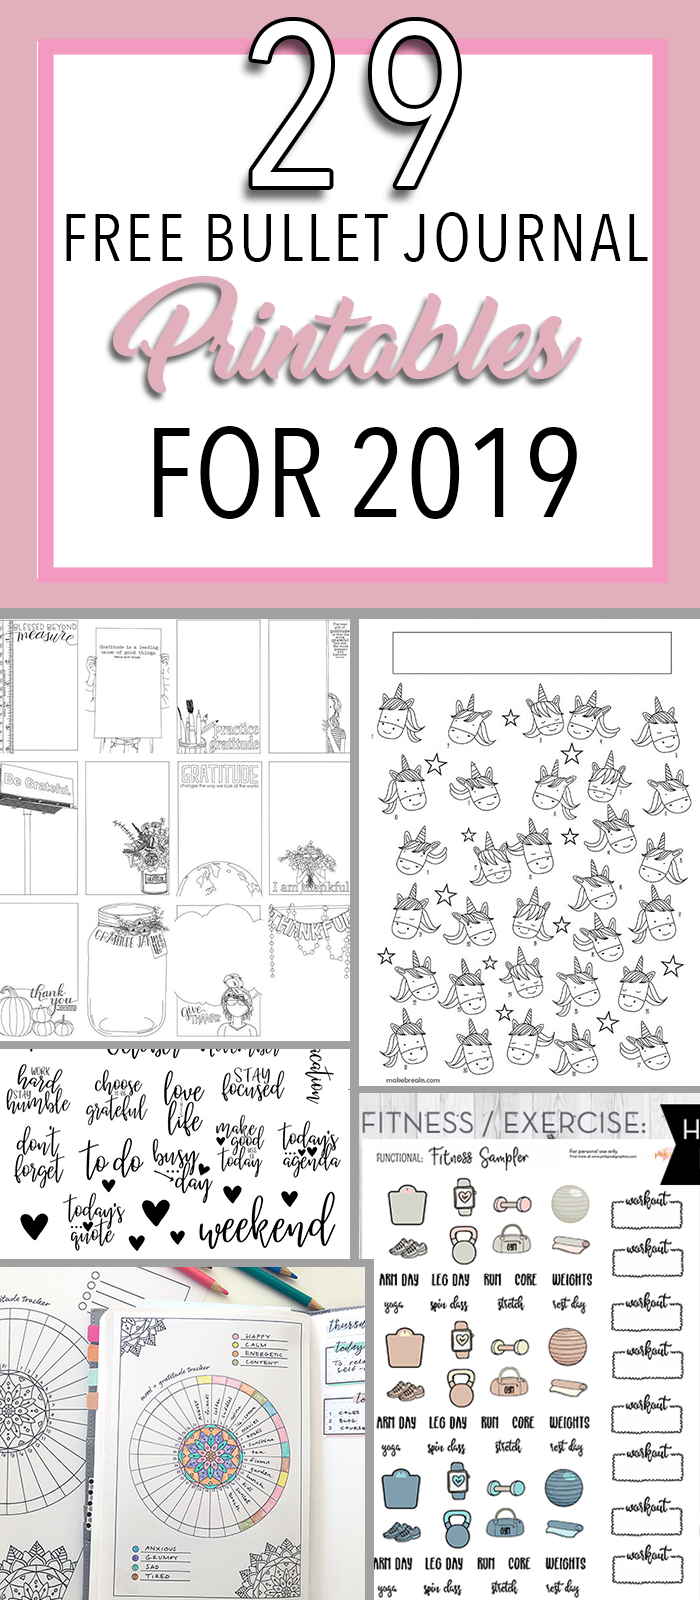 image about Free Printable Bullet Journal identify 29 Cost-free Bullet Magazine Printables toward Snag for 2019 The